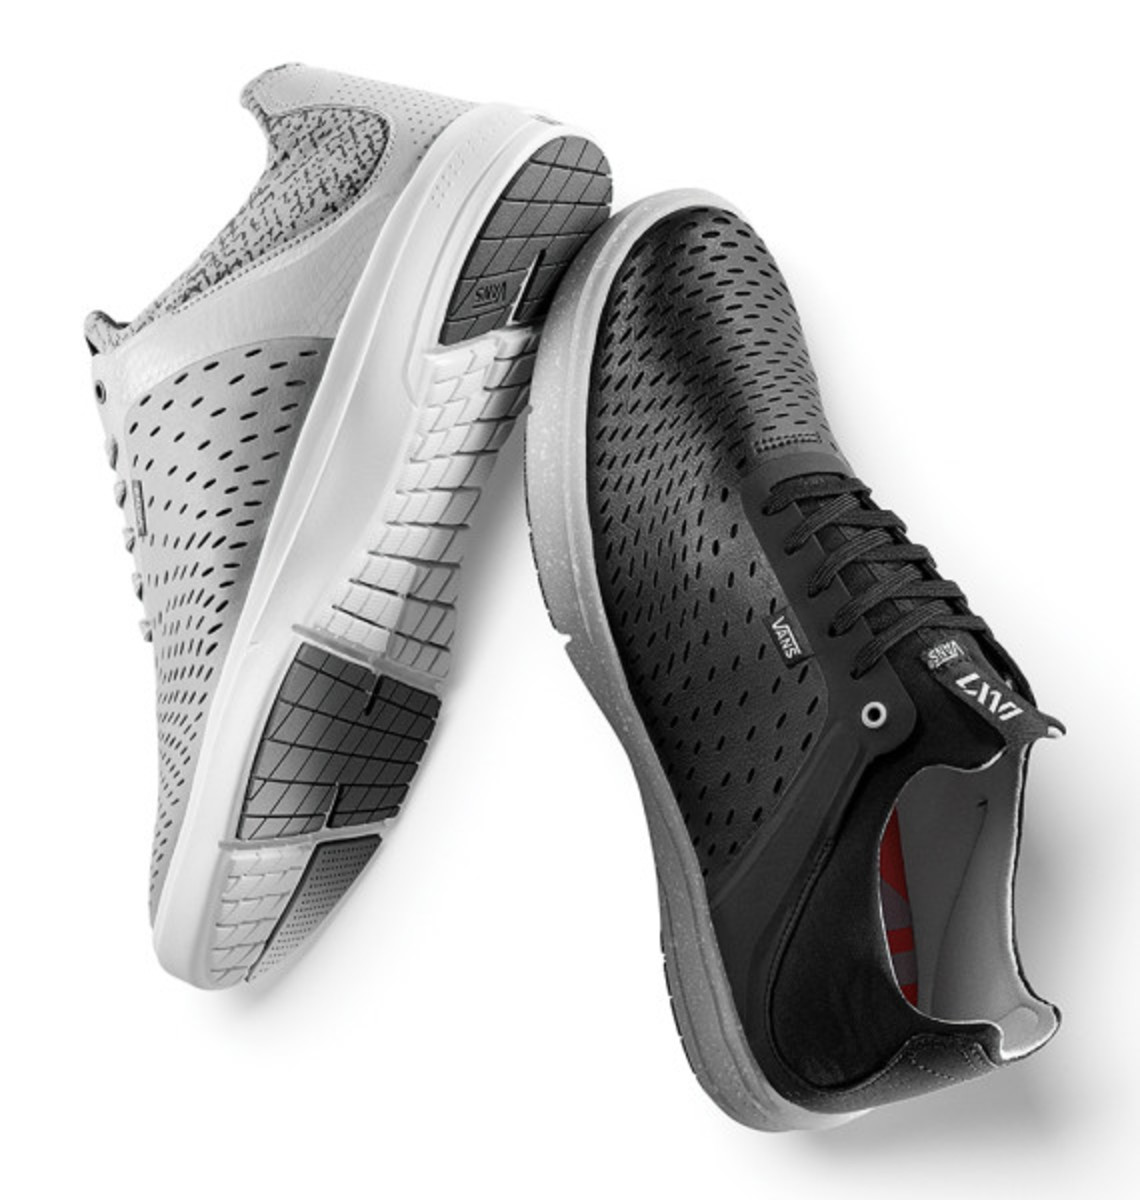 vans-lxvi-prime-officially-unveiled-02